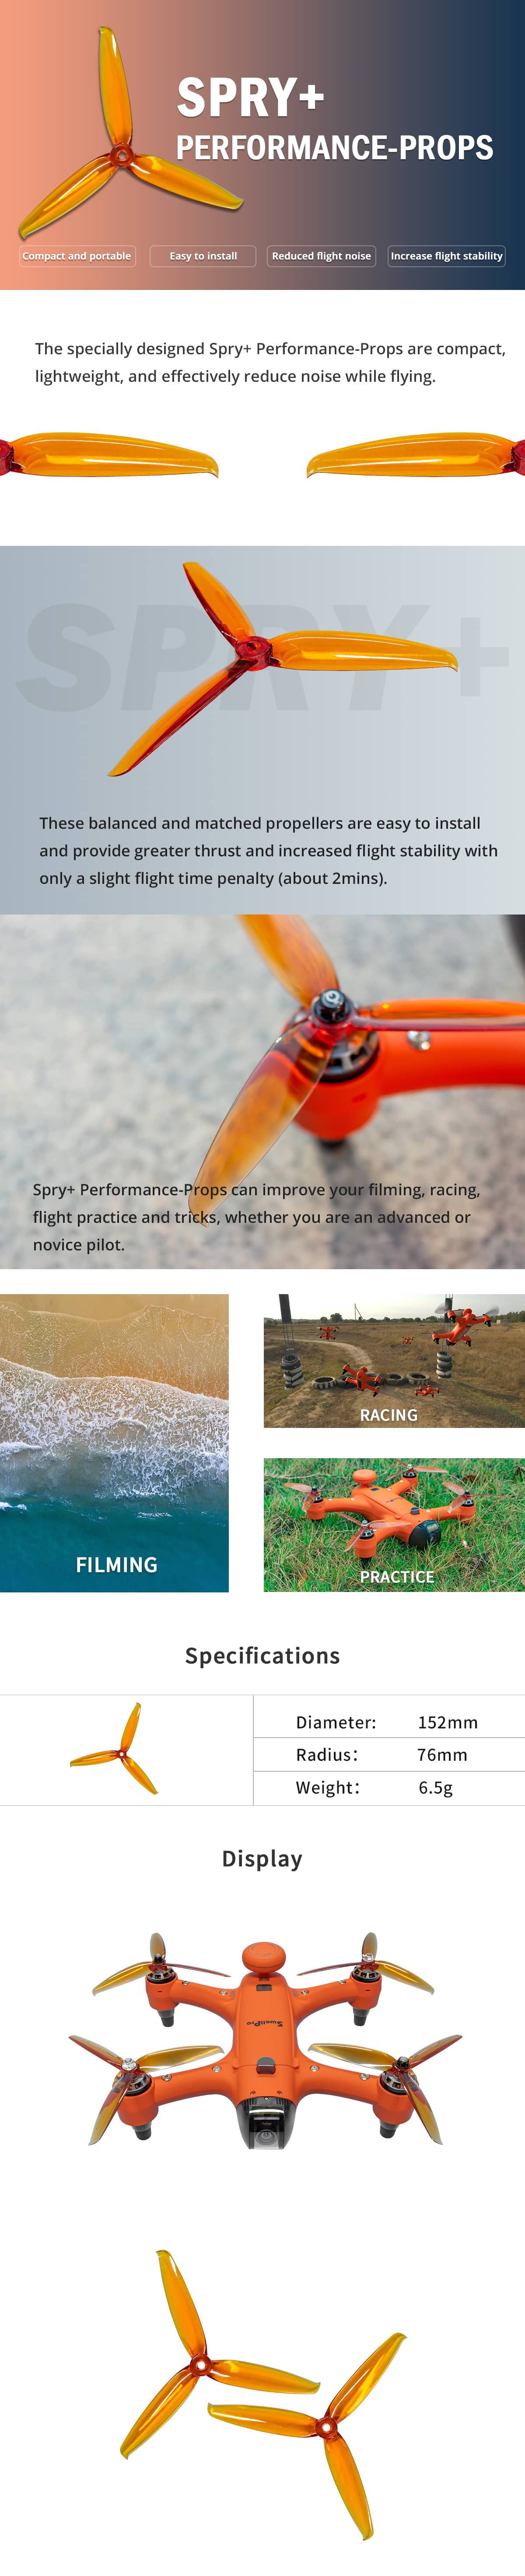 Swellpro Spry+ Performance Props